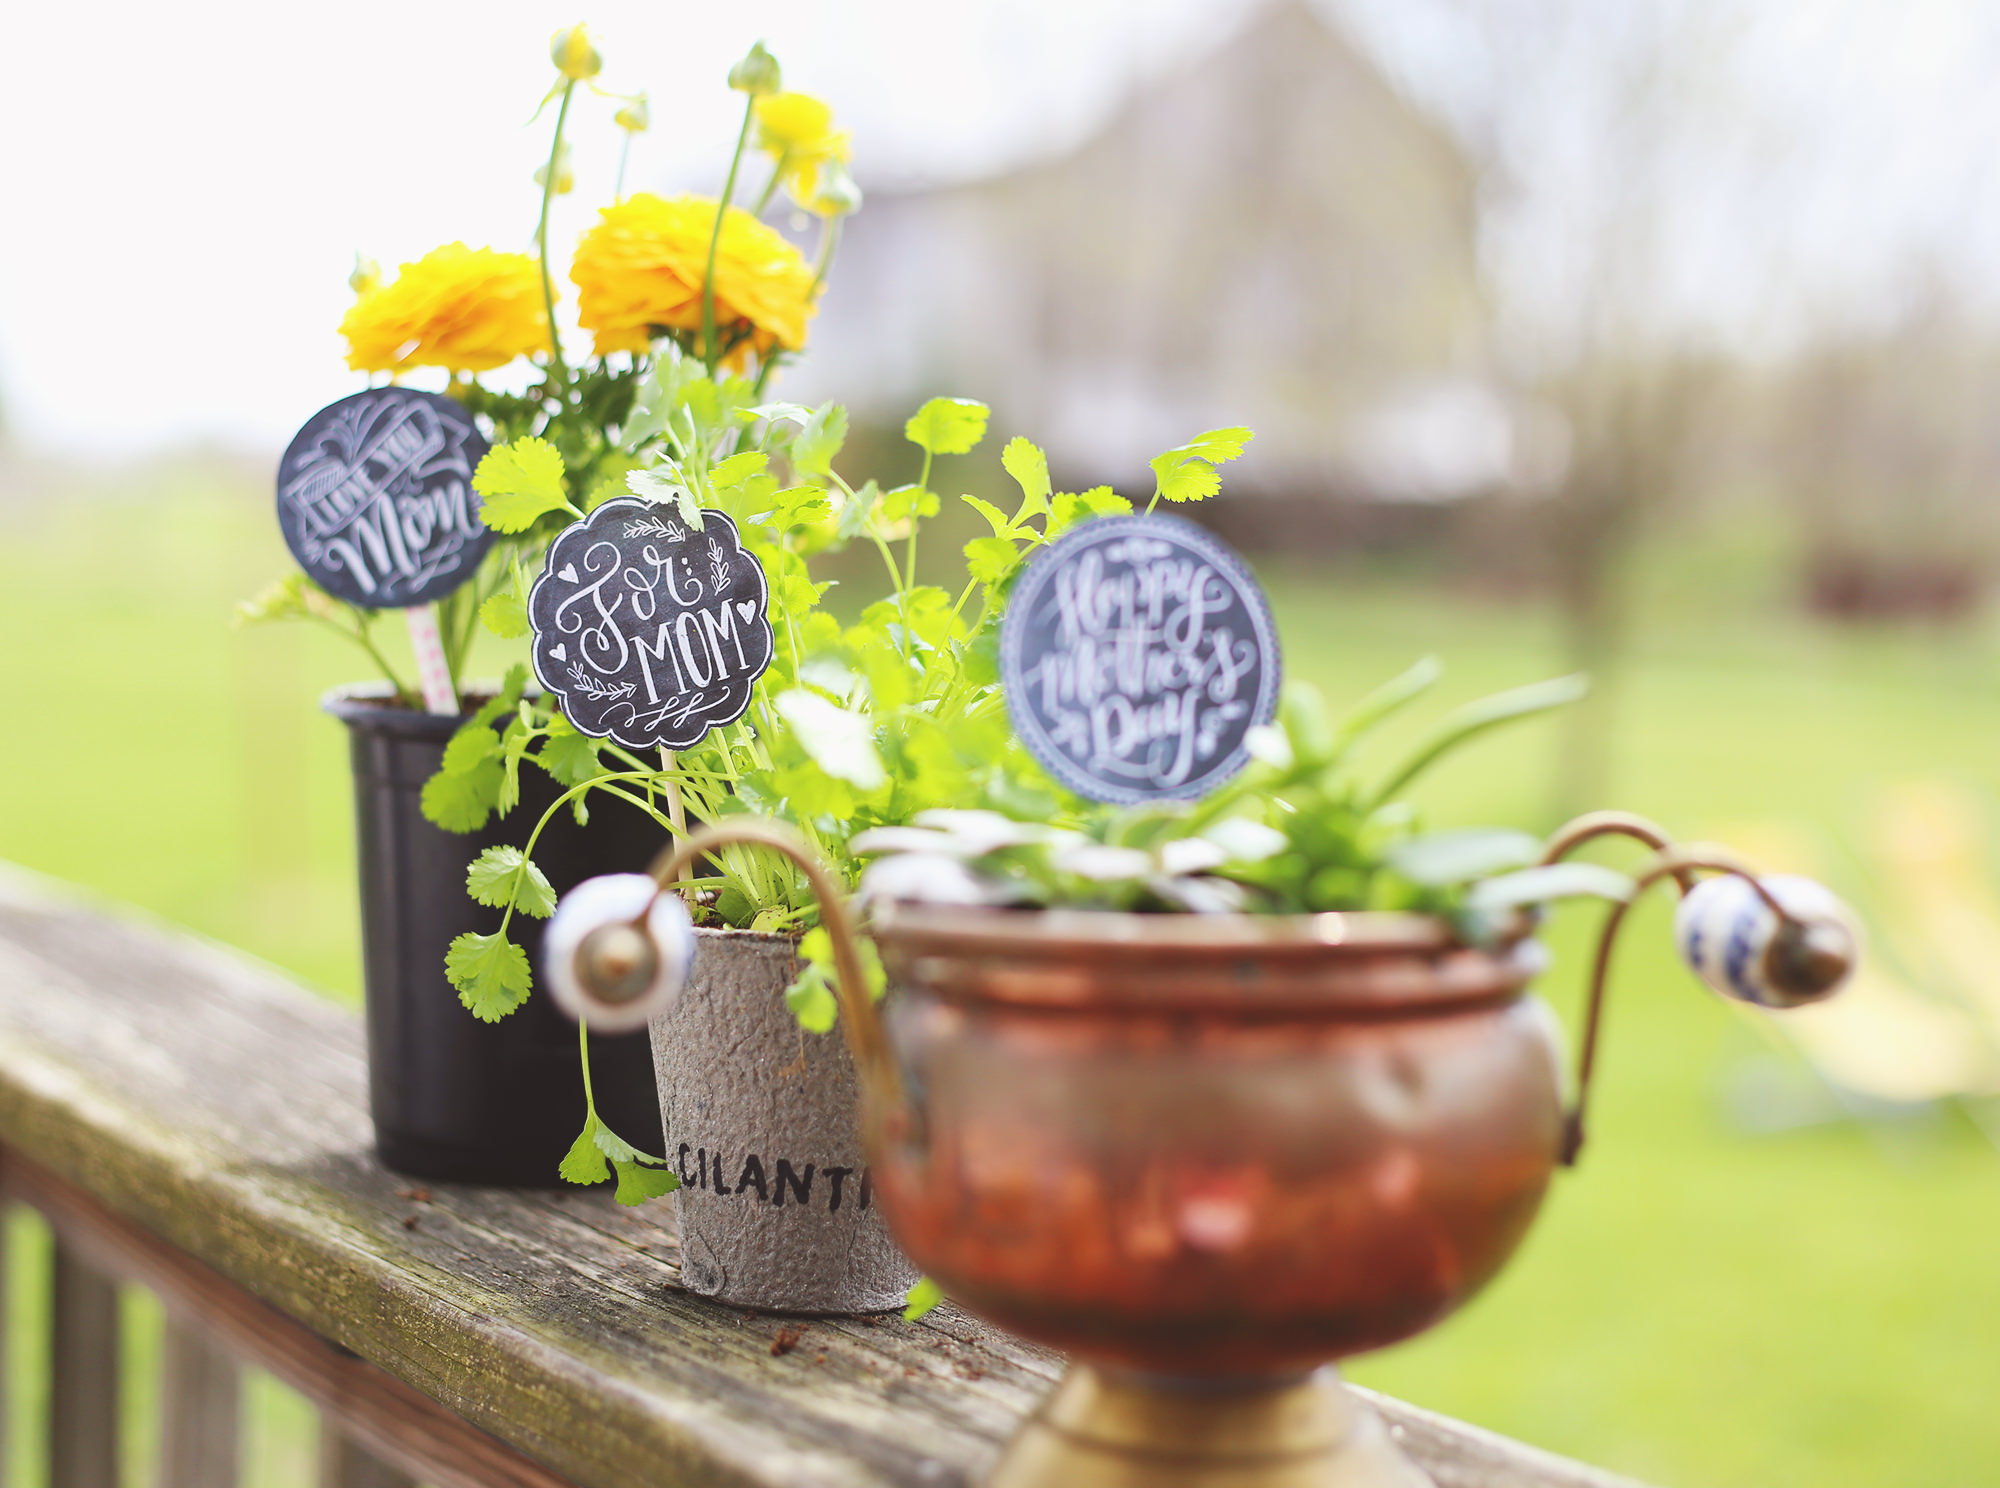 No need for wrapping or ribbons, just download our free, chalkboard Mother's Day gift tags and your plants will be gift-ready!